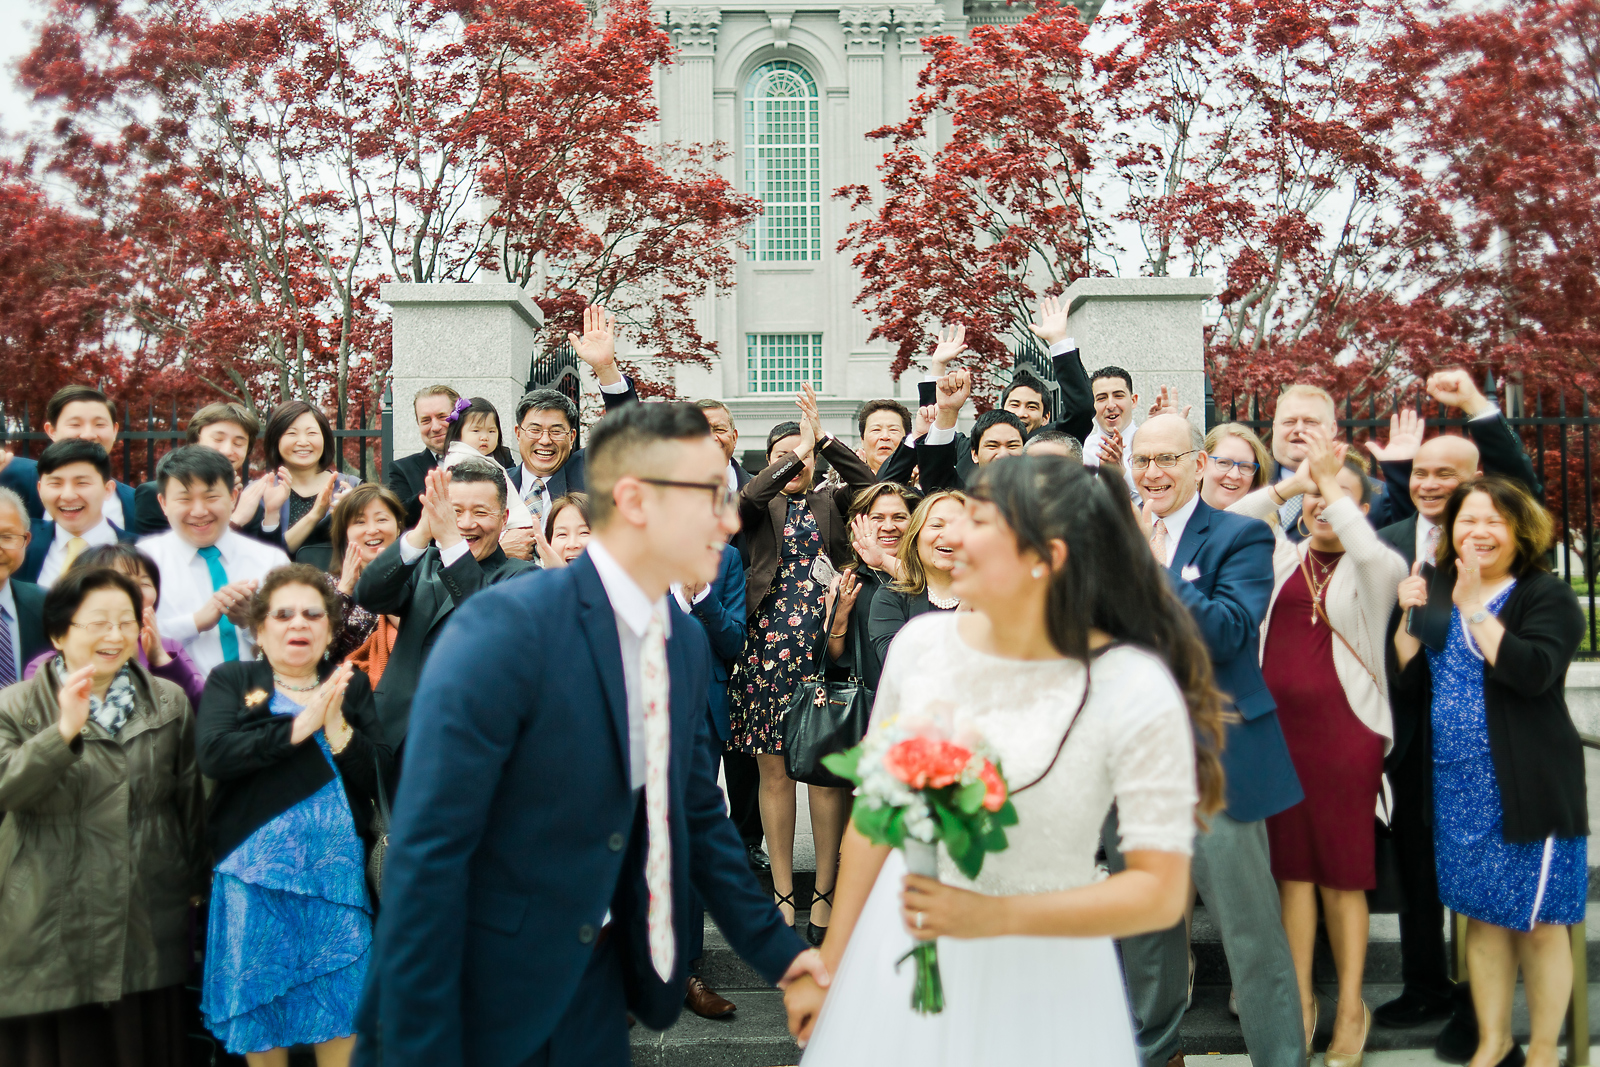 lds_philadelphia_temple_wedding_photography_007.jpg